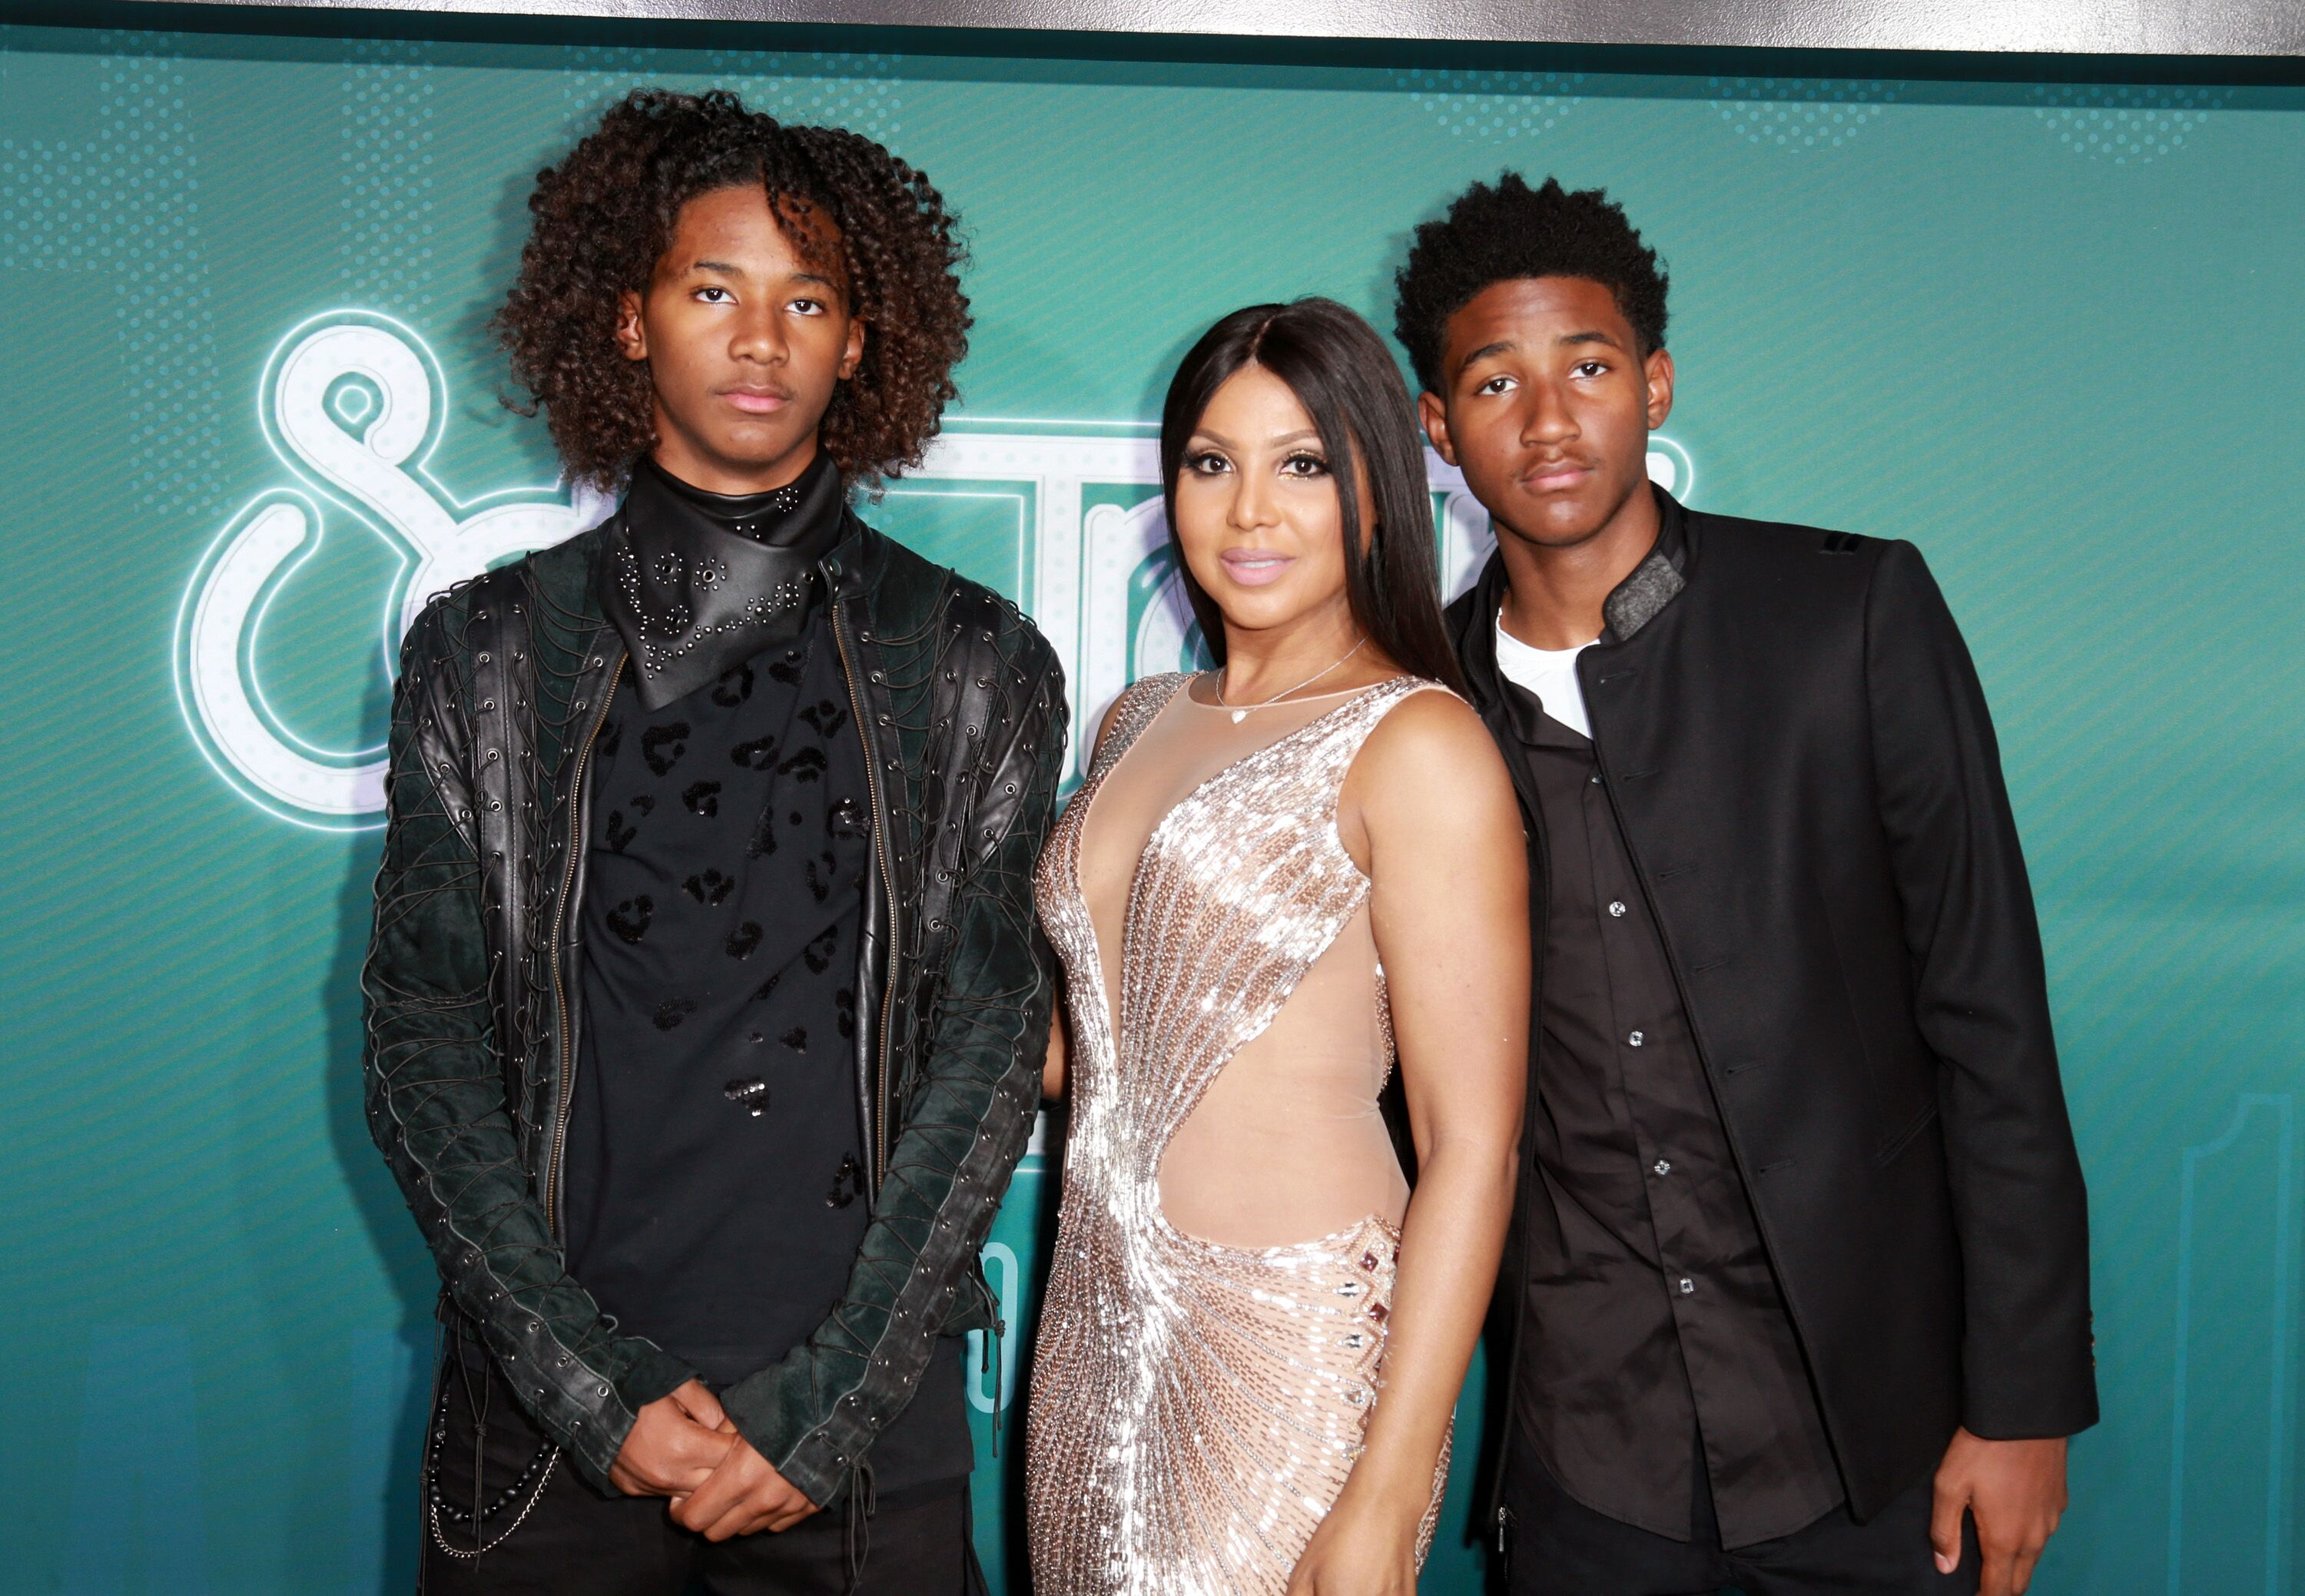 Toni Braxton and her sons Diezel and Denim attend the Soul Train Awards 2017 | Source: Getty Images/GlobalImagesUkraine